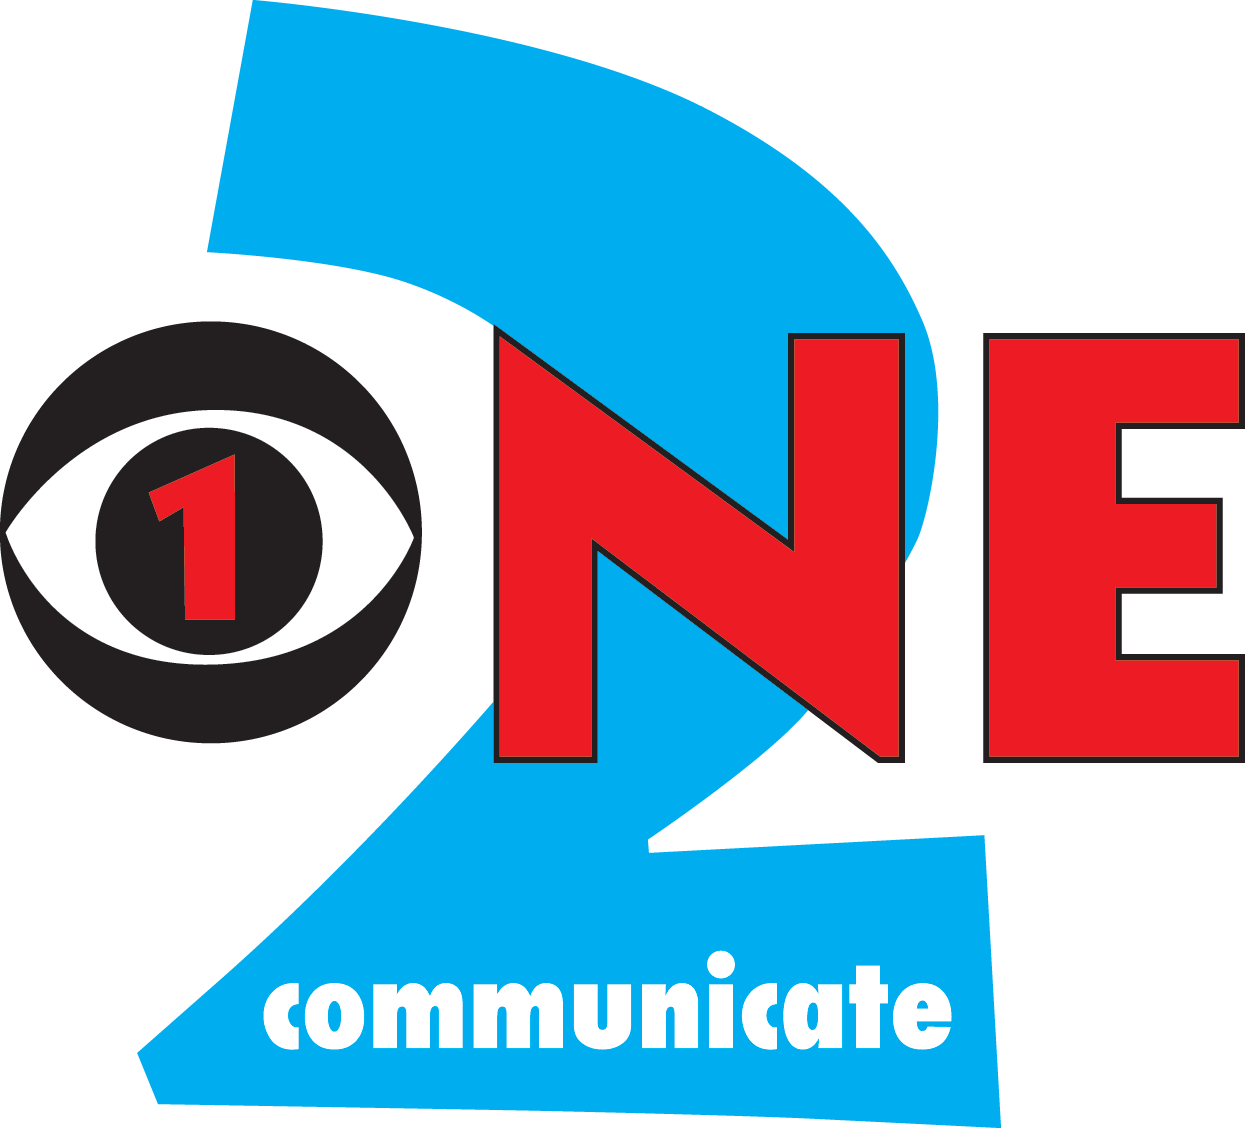 12communicate logo